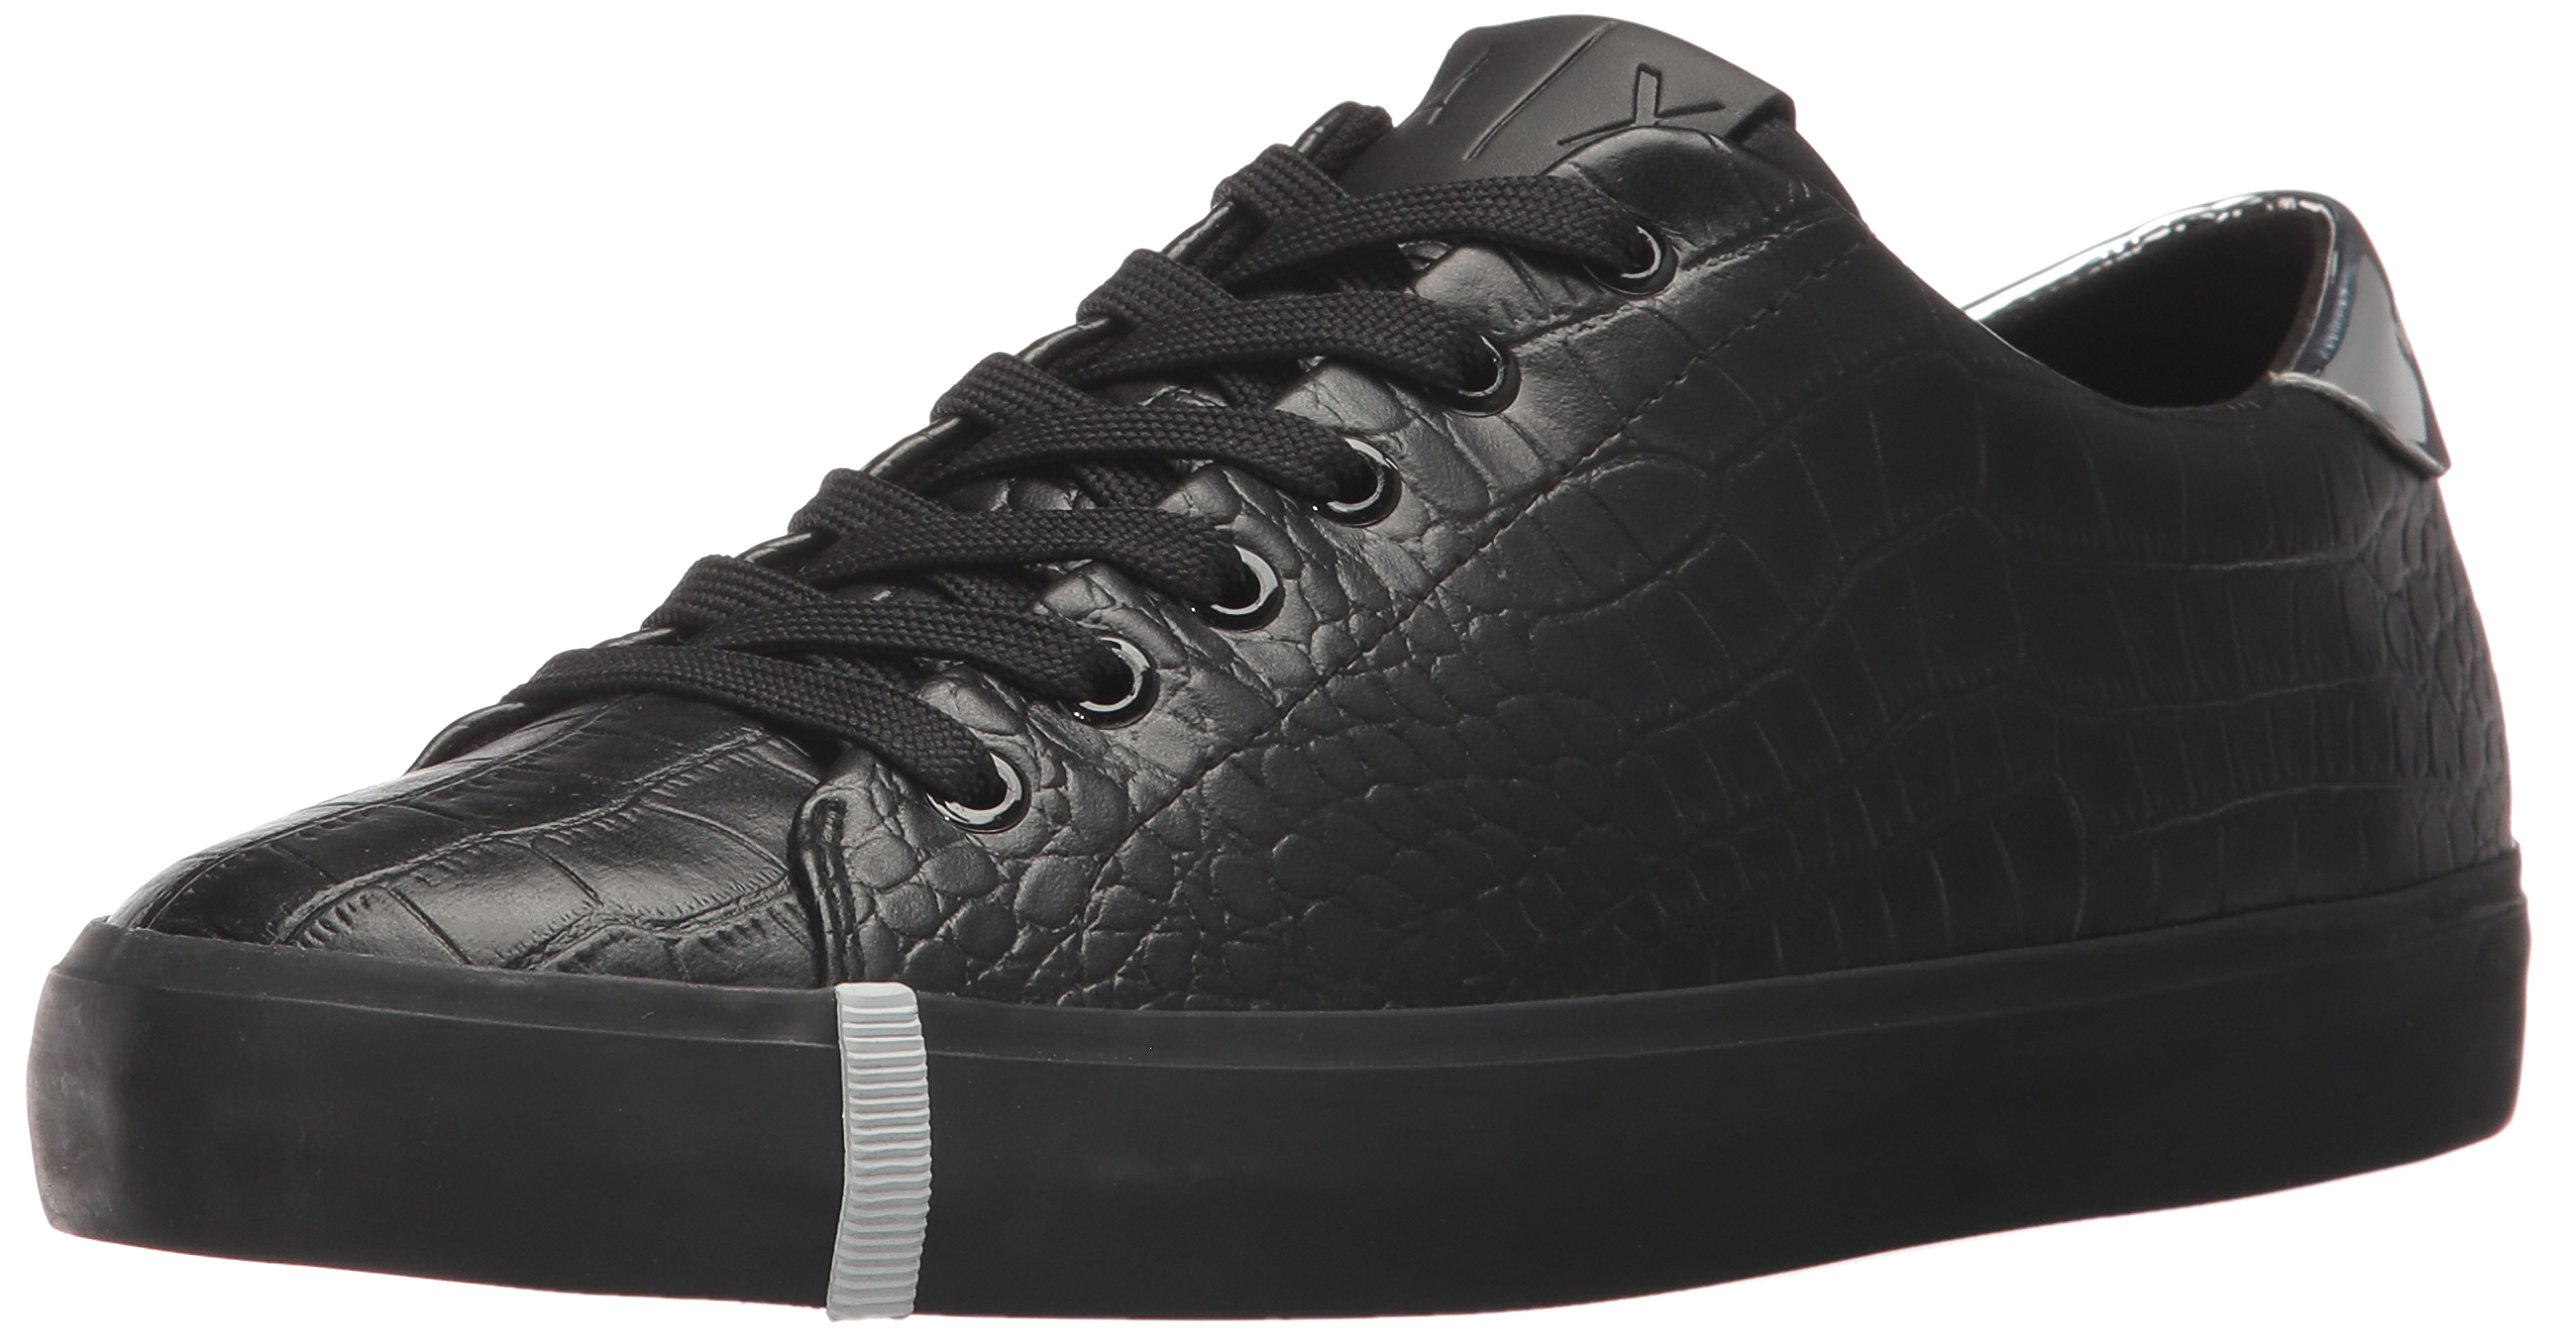 A|X Armani Exchange Women's Croc Low Top Sneaker, Nero, 5 M US